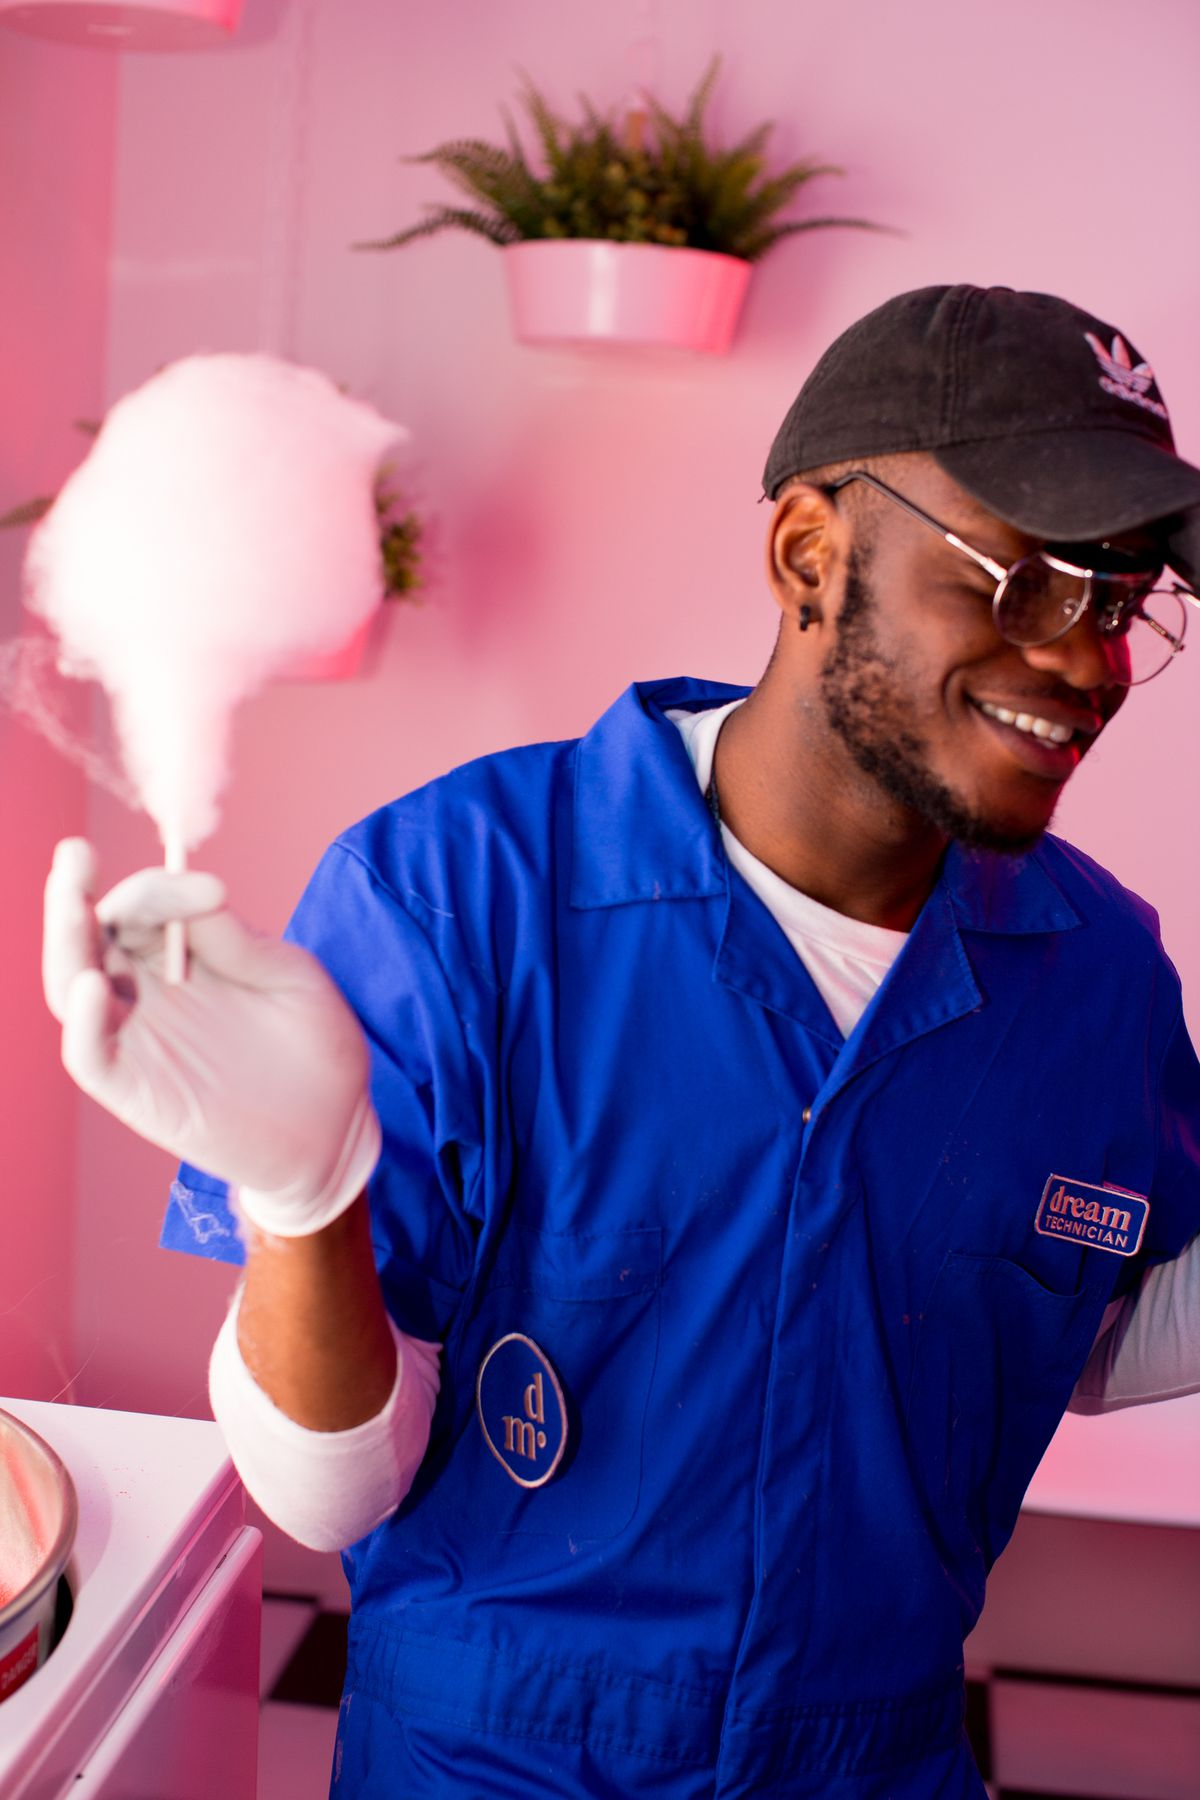 Dream Machine employee with cotton candy in left hand, pink background with plants